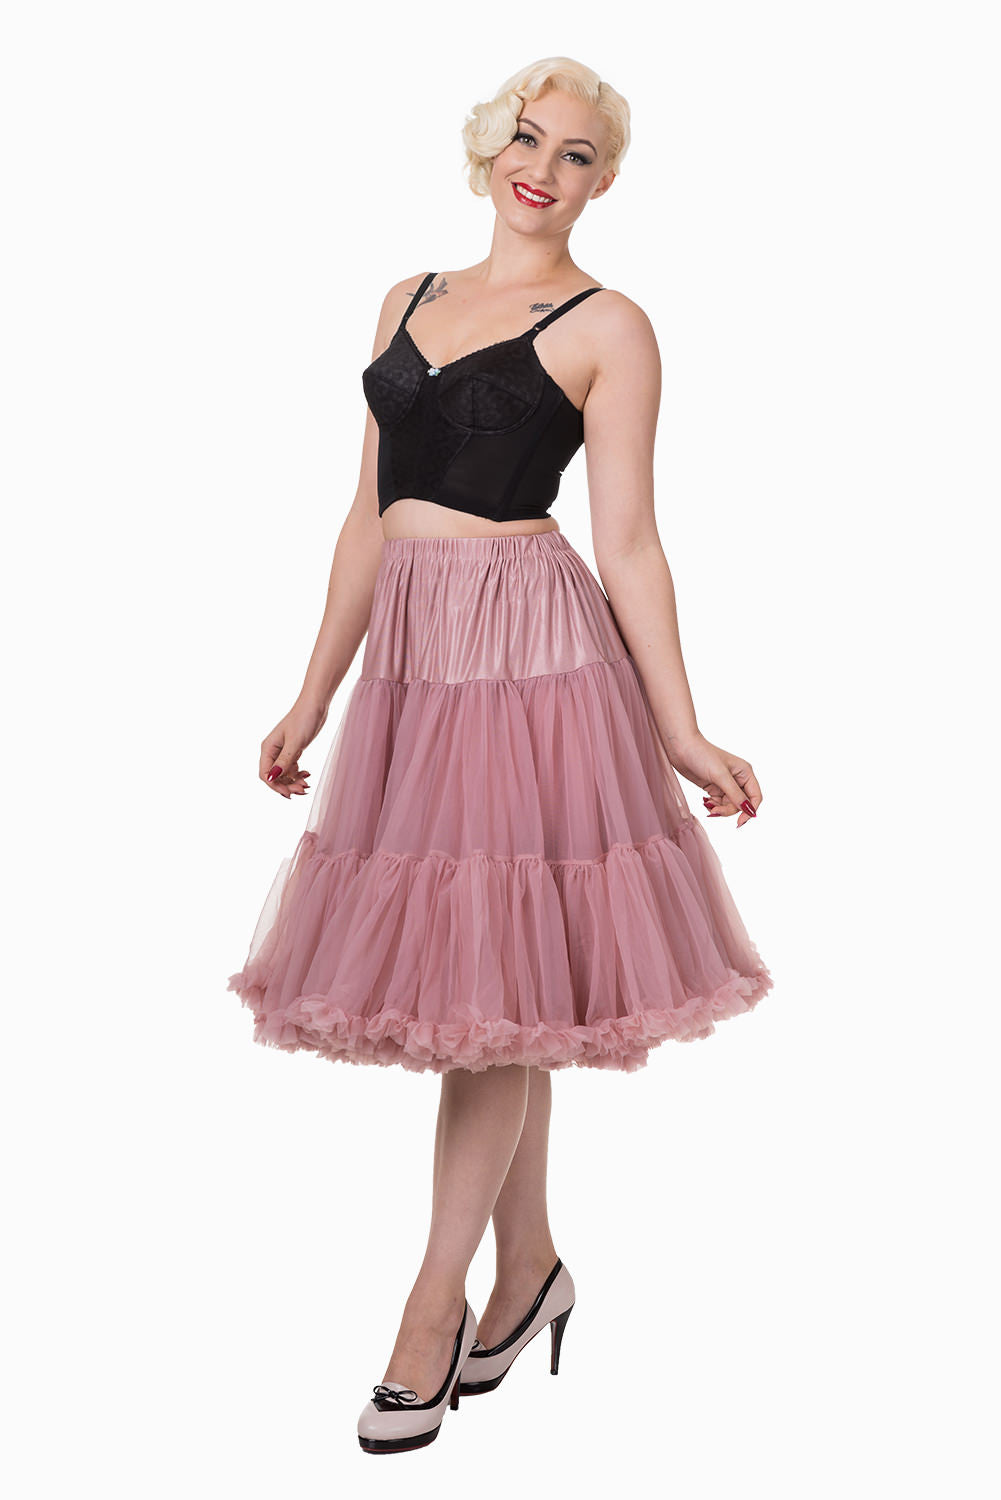 "Dancing Days Lifeforms 50s Style 25""-27"" Long Petticoat In Dusky Pink"